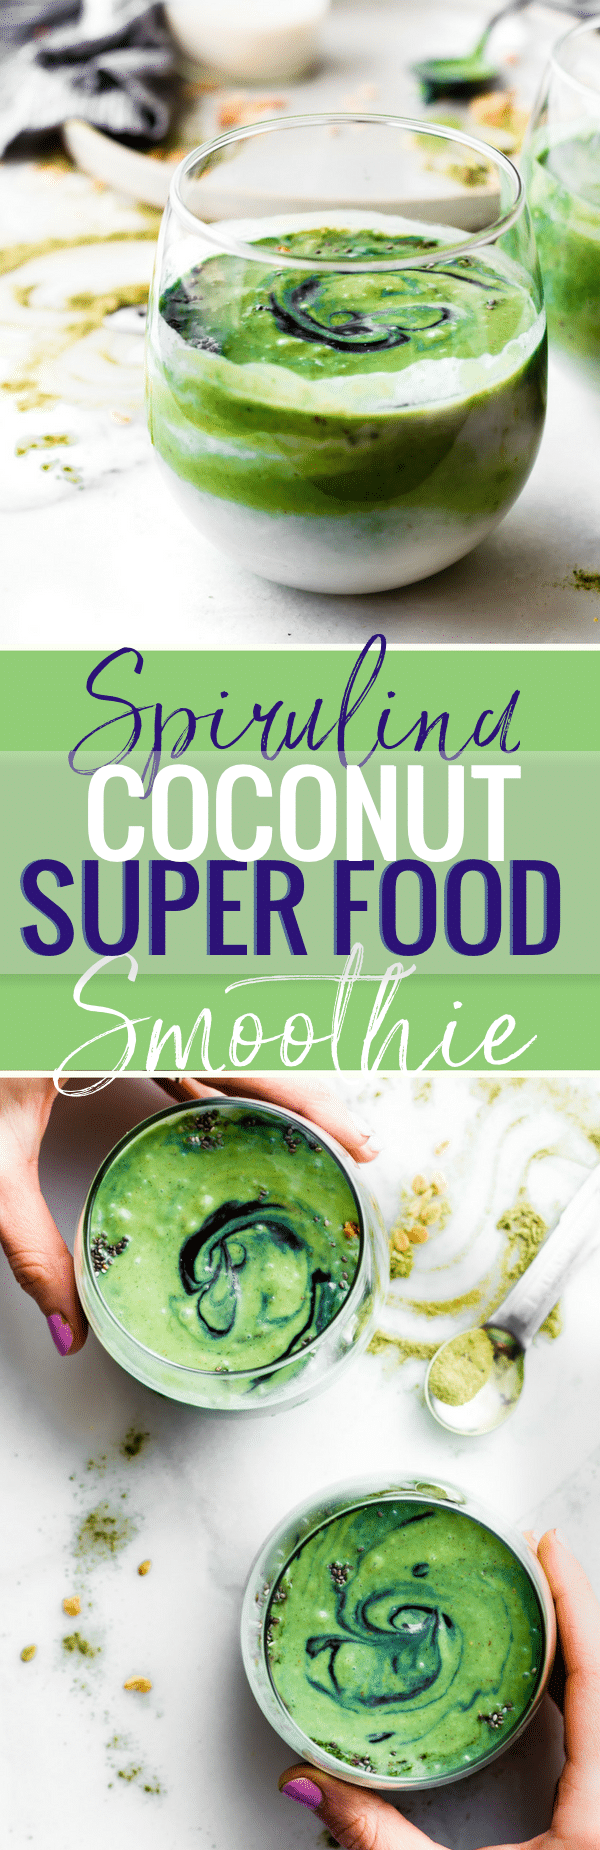 "CREAMY COCONUT SPIRULINA SUPERFOOD SMOOTHIE! an easy way to boost Energy and Protein intake with real food. No protein powder needed. A ""balanced"" creamy Superfood smoothie with coconut milk, spirulina, fruit, avocado, ginger root, and a pinch antioxidant rich spices! Paleo and Vegan friendly for all! www.cottercrunch.com"